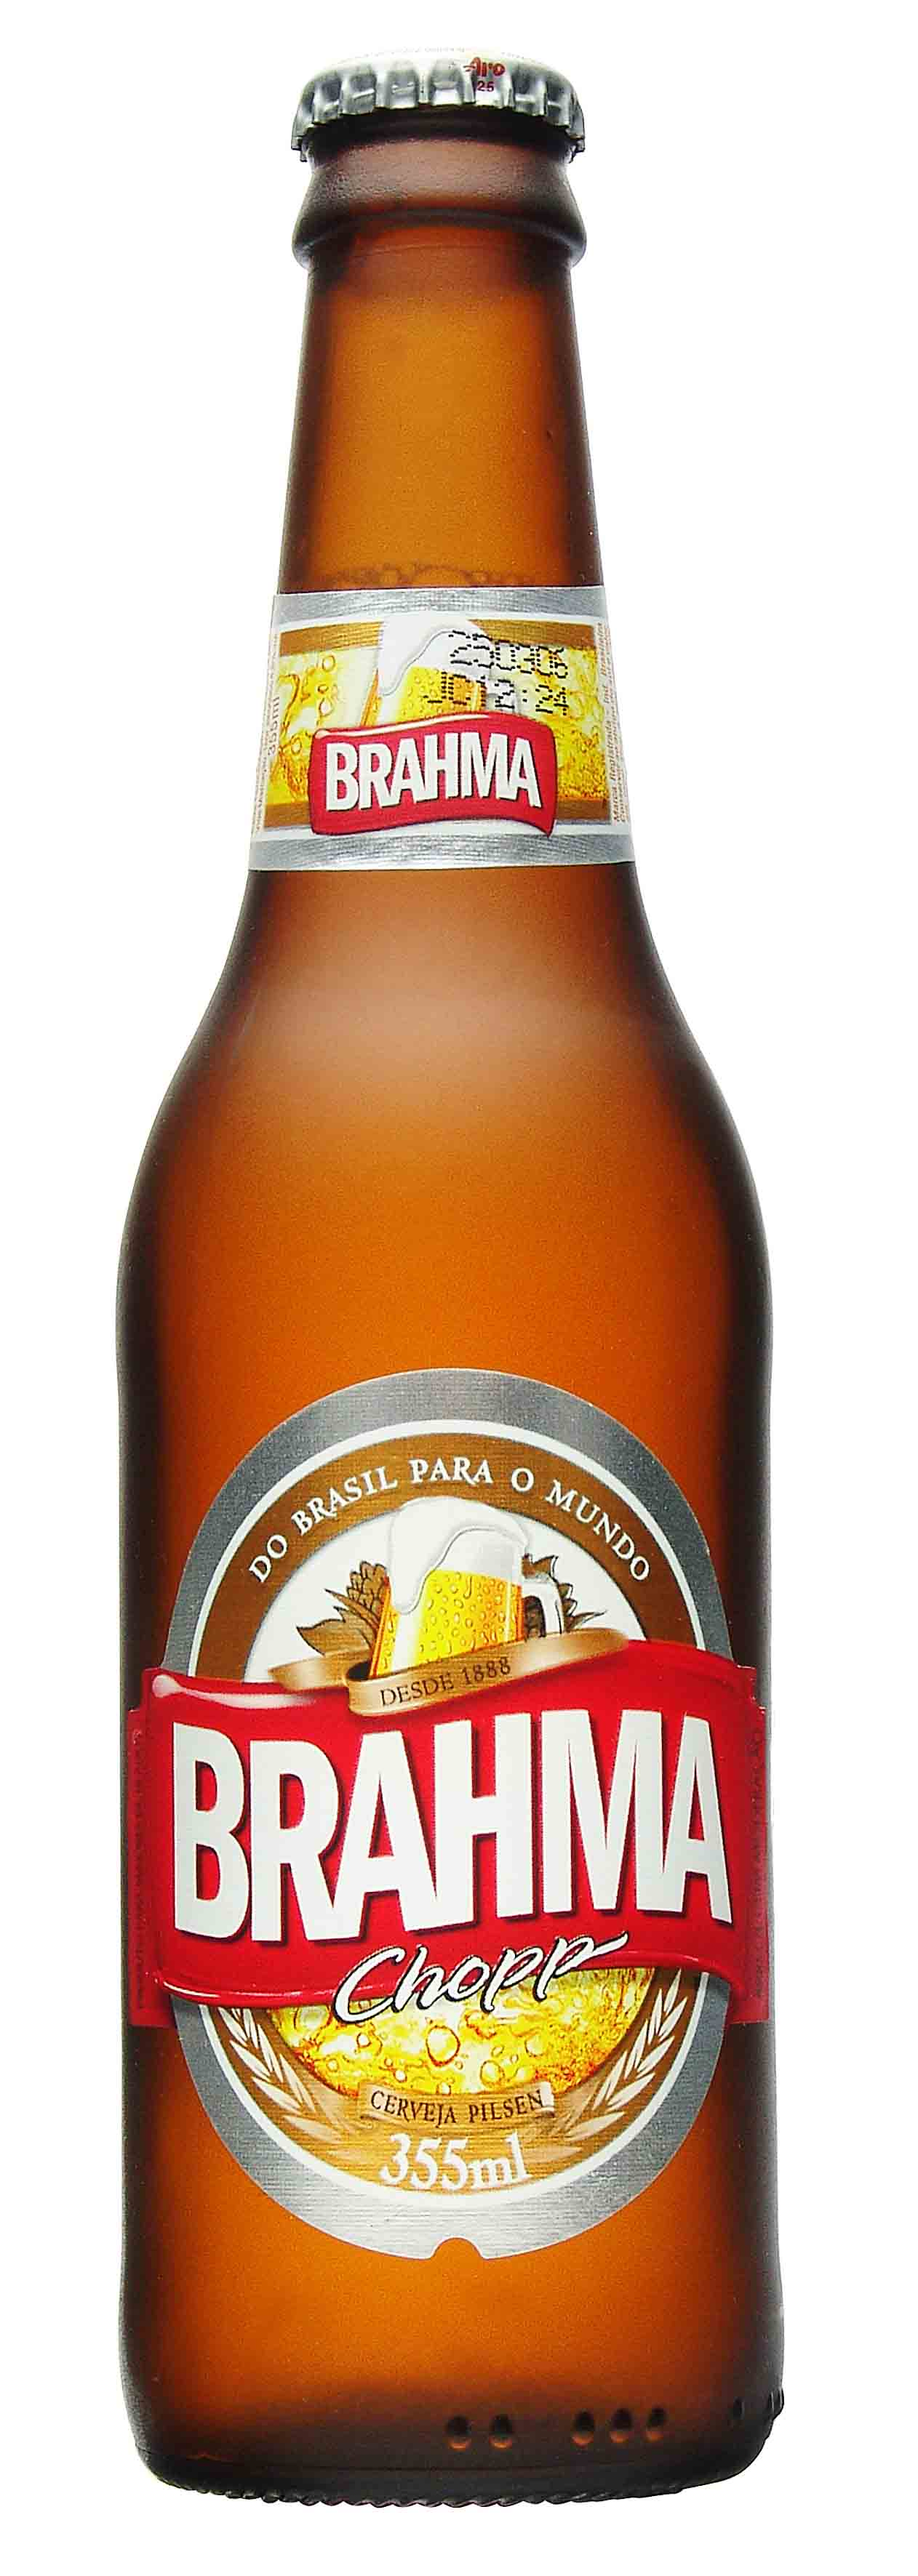 Brahma Malzbier Beer products,Brazil Brahma Malzbier Beer supplier